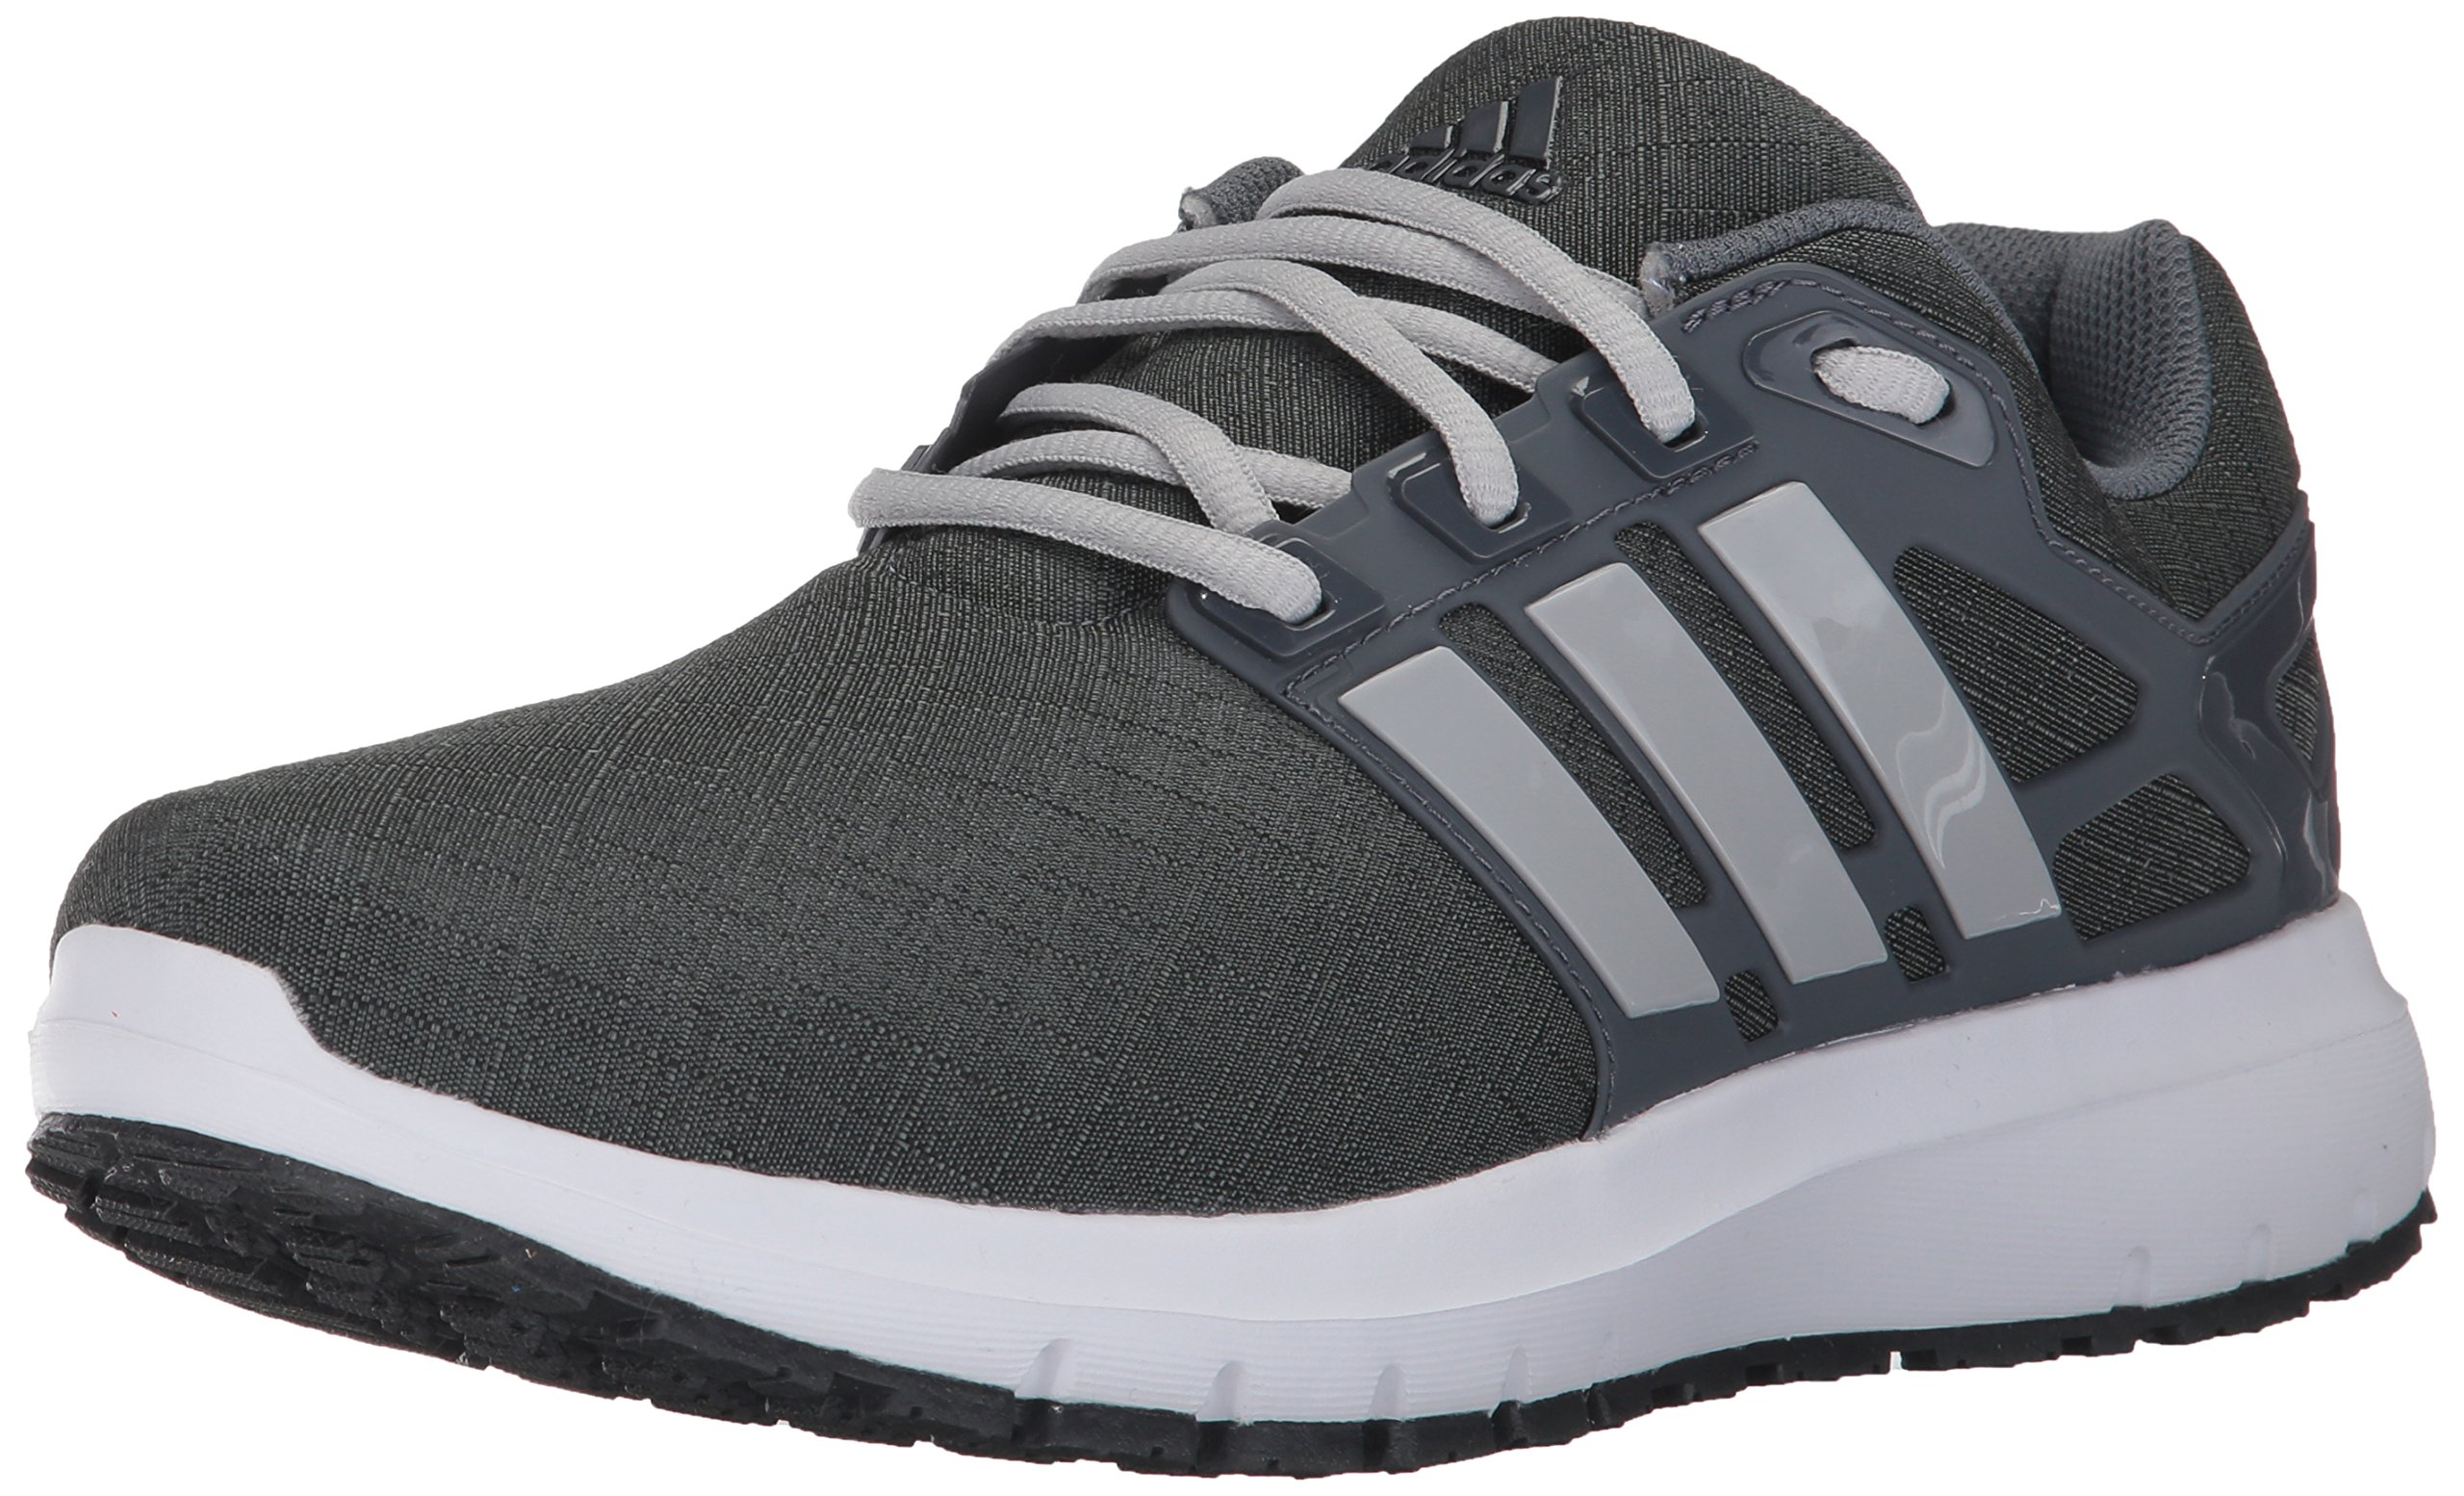 80d98fbcf45 Galleon - Adidas Men s Energy Cloud M Running Shoe